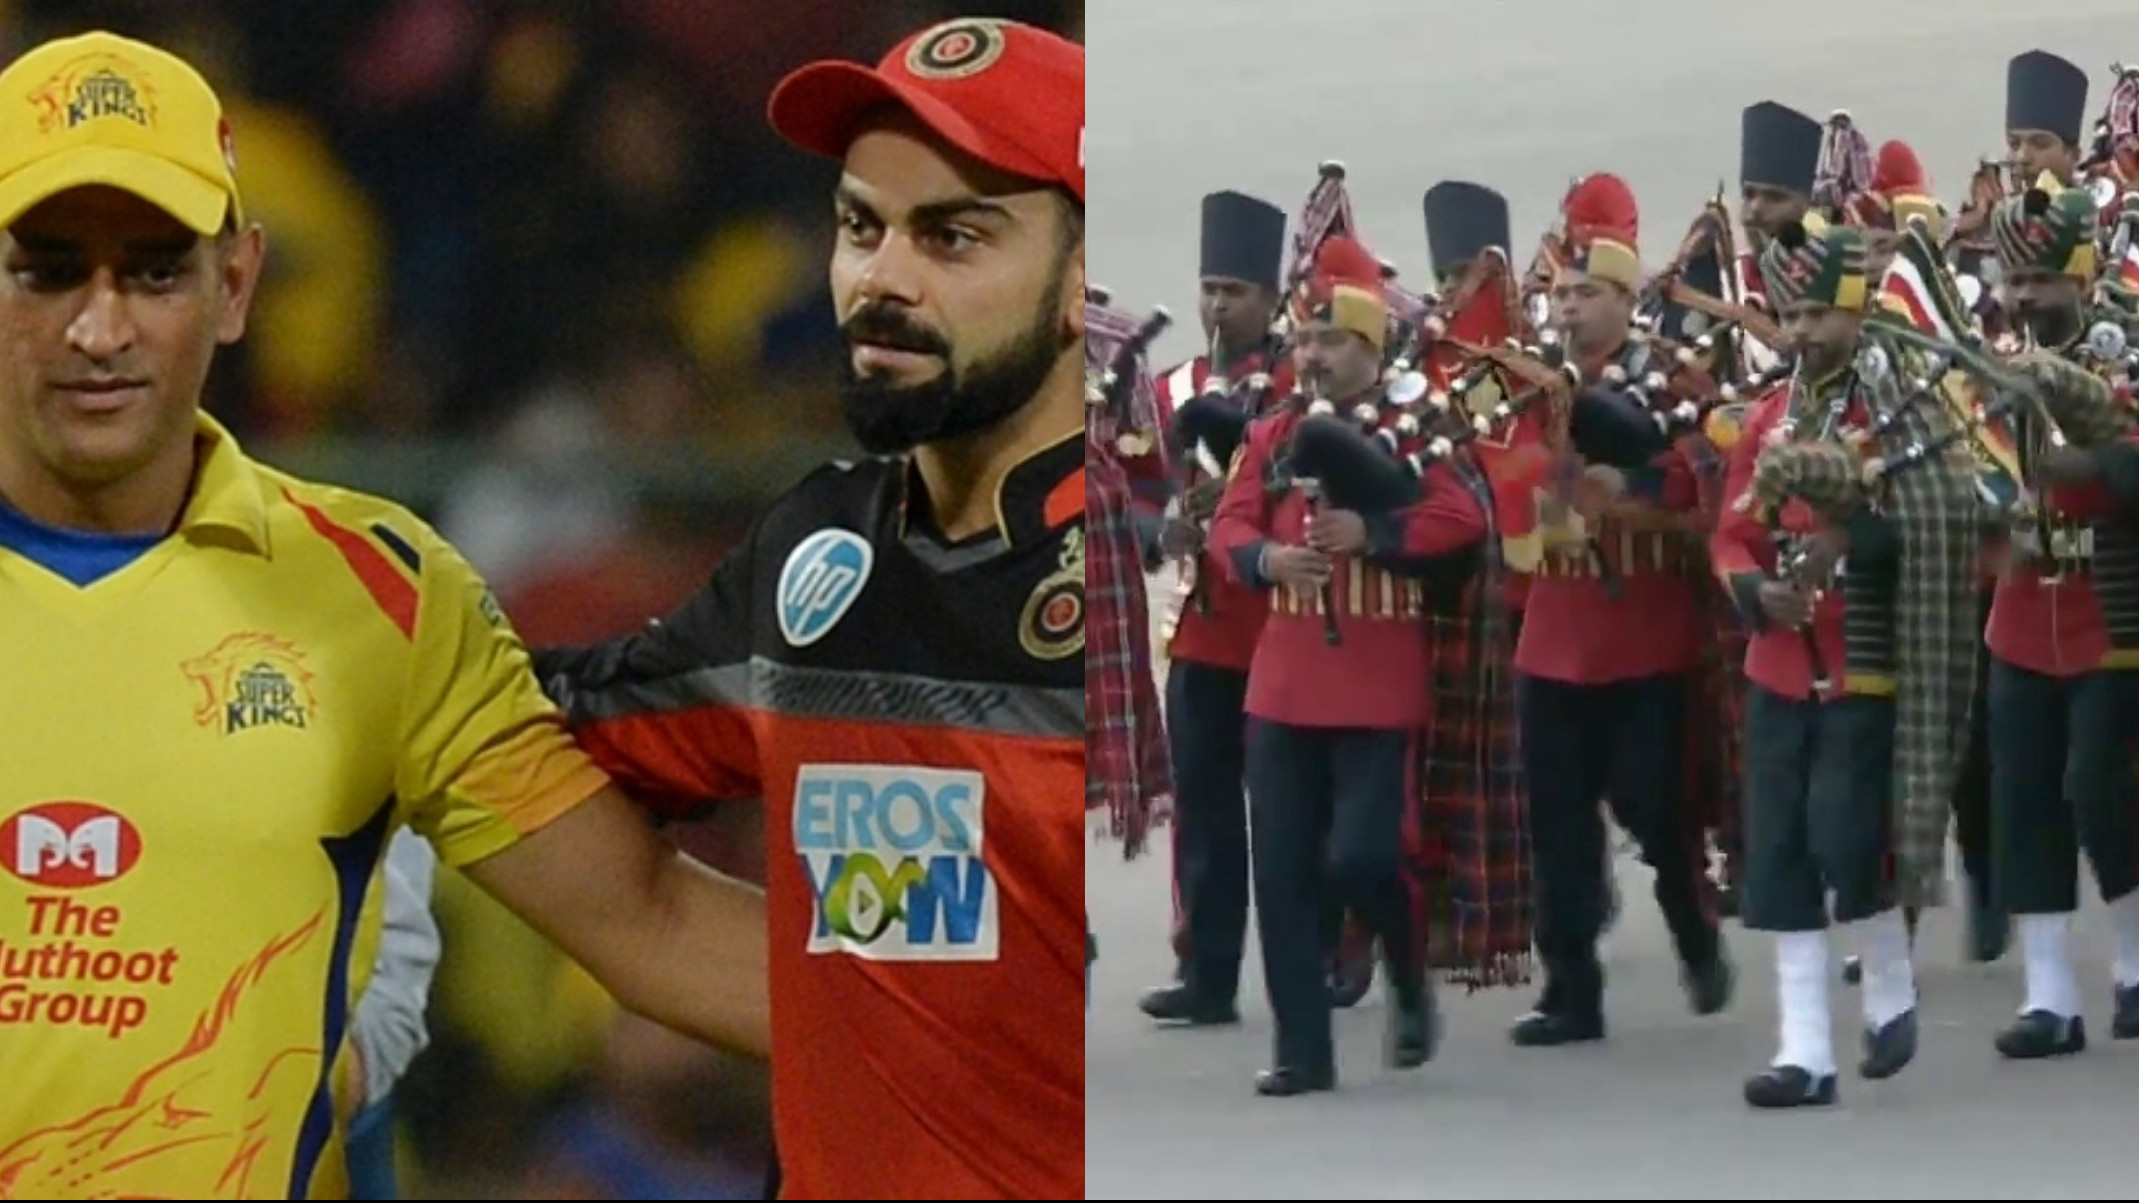 IPL 2019: IPL opener between CSK and RCB to see military bands performing